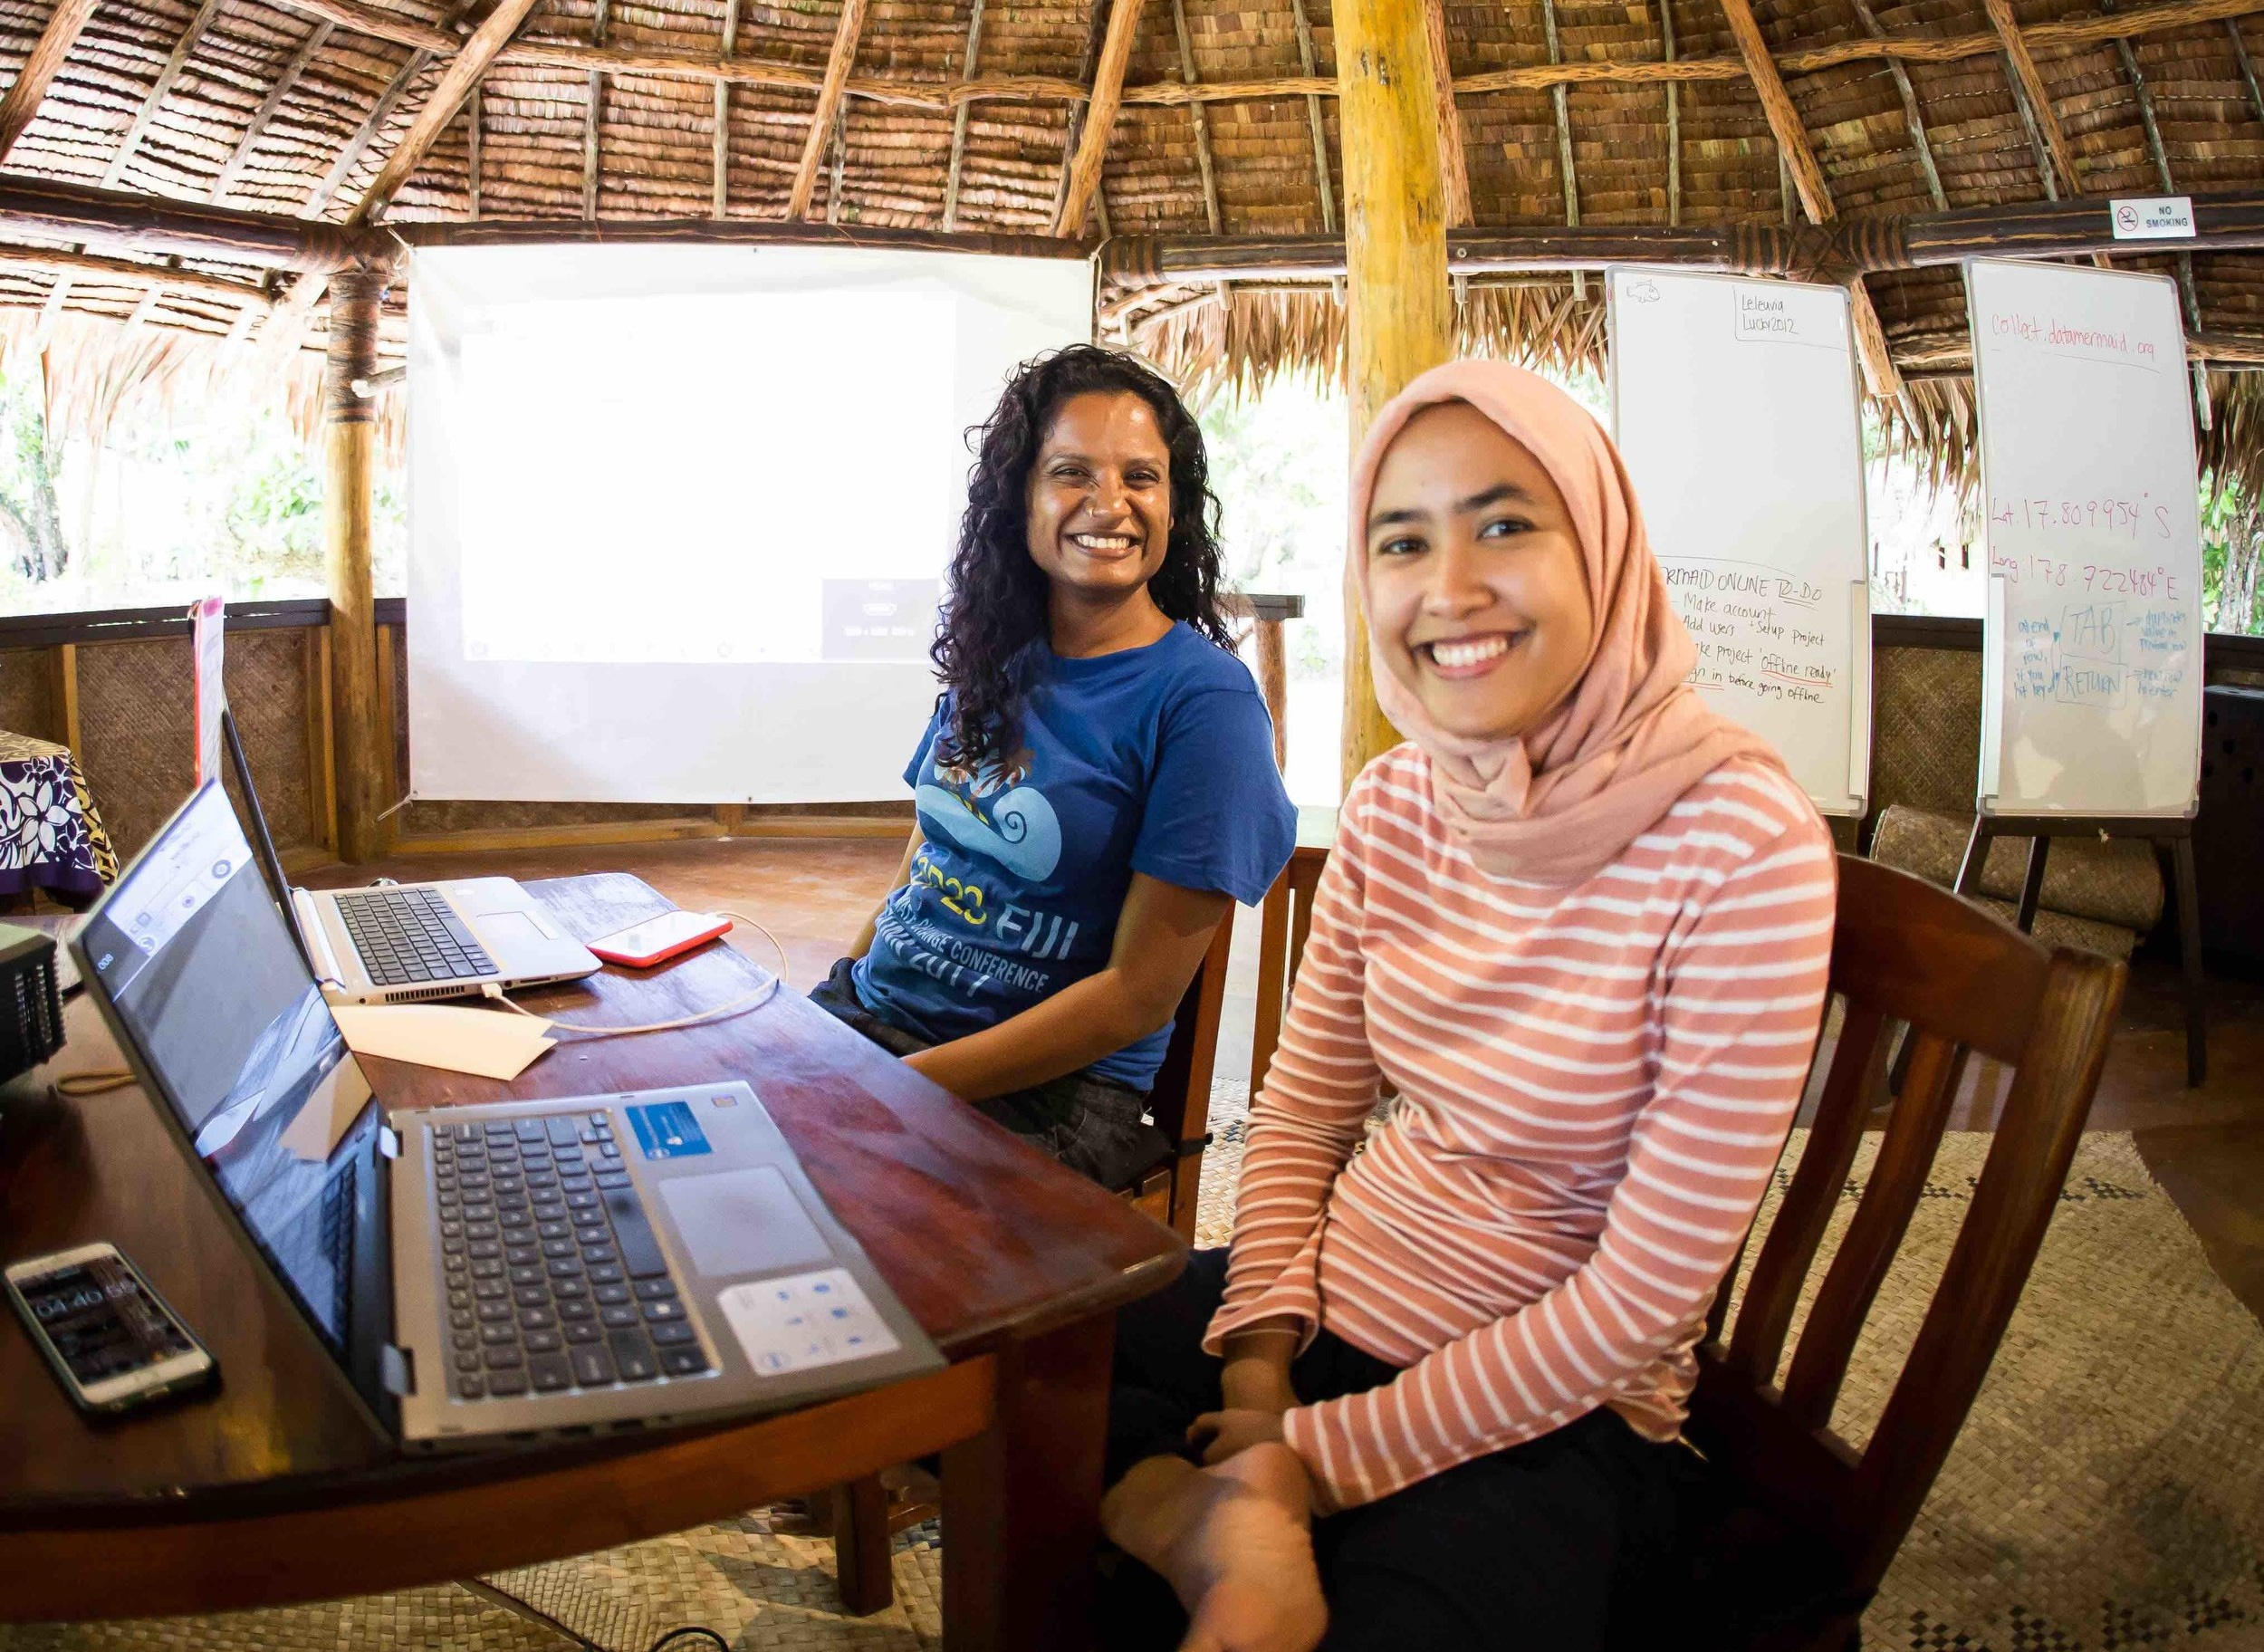 MERMAID accelerates data entry, analysis and reporting for field scientists around the world.  Our first User Summit was held in Fiji in December 2018 .